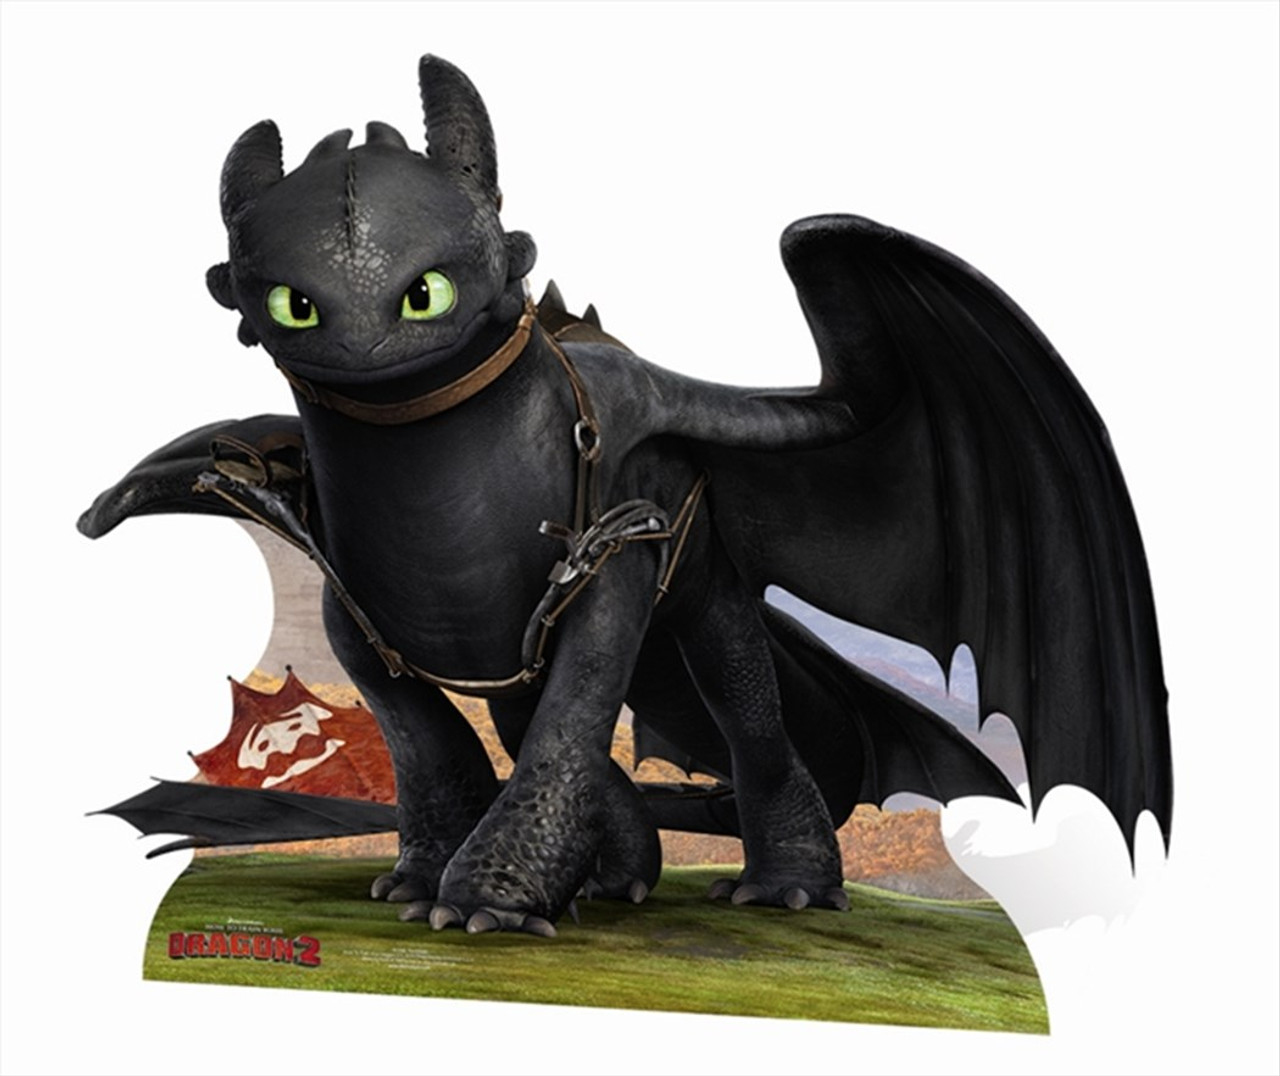 Toothless From How To Train Your Dragon 2 Cardboard Cutout Standee Standup